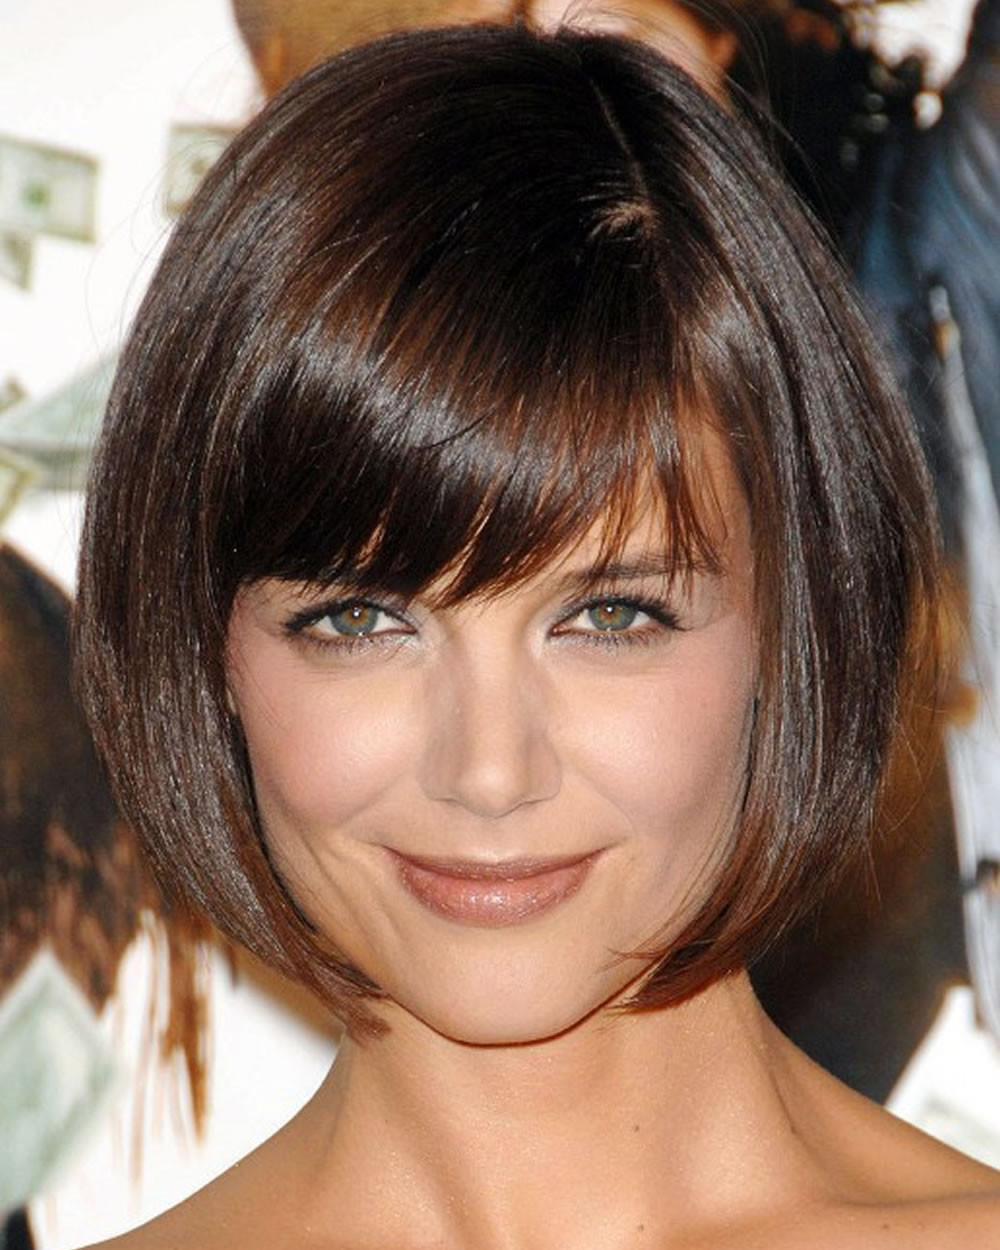 Best ideas about Short Haircuts With Bangs 2019 . Save or Pin 31 Chic Short Haircut Ideas 2018 & Pixie & Bob Hair Now.